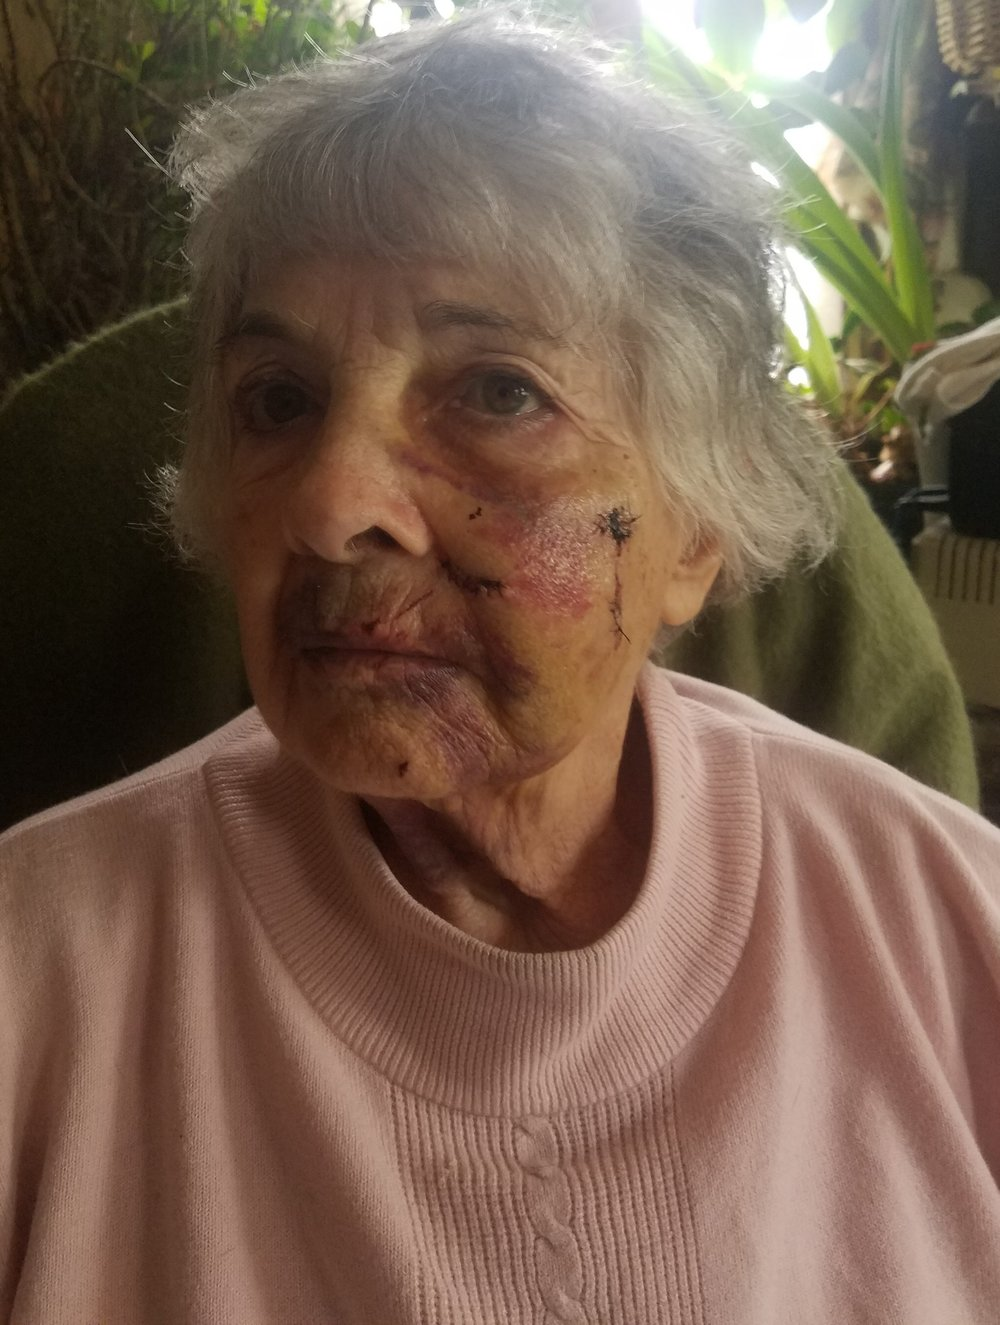 Mrs. Dabrowski is pictured here with some of the facial injuries she sustained after a bobcat attack. She sustained more injuries to her arms and back. (Photo courtesy Gene Dabrowski)